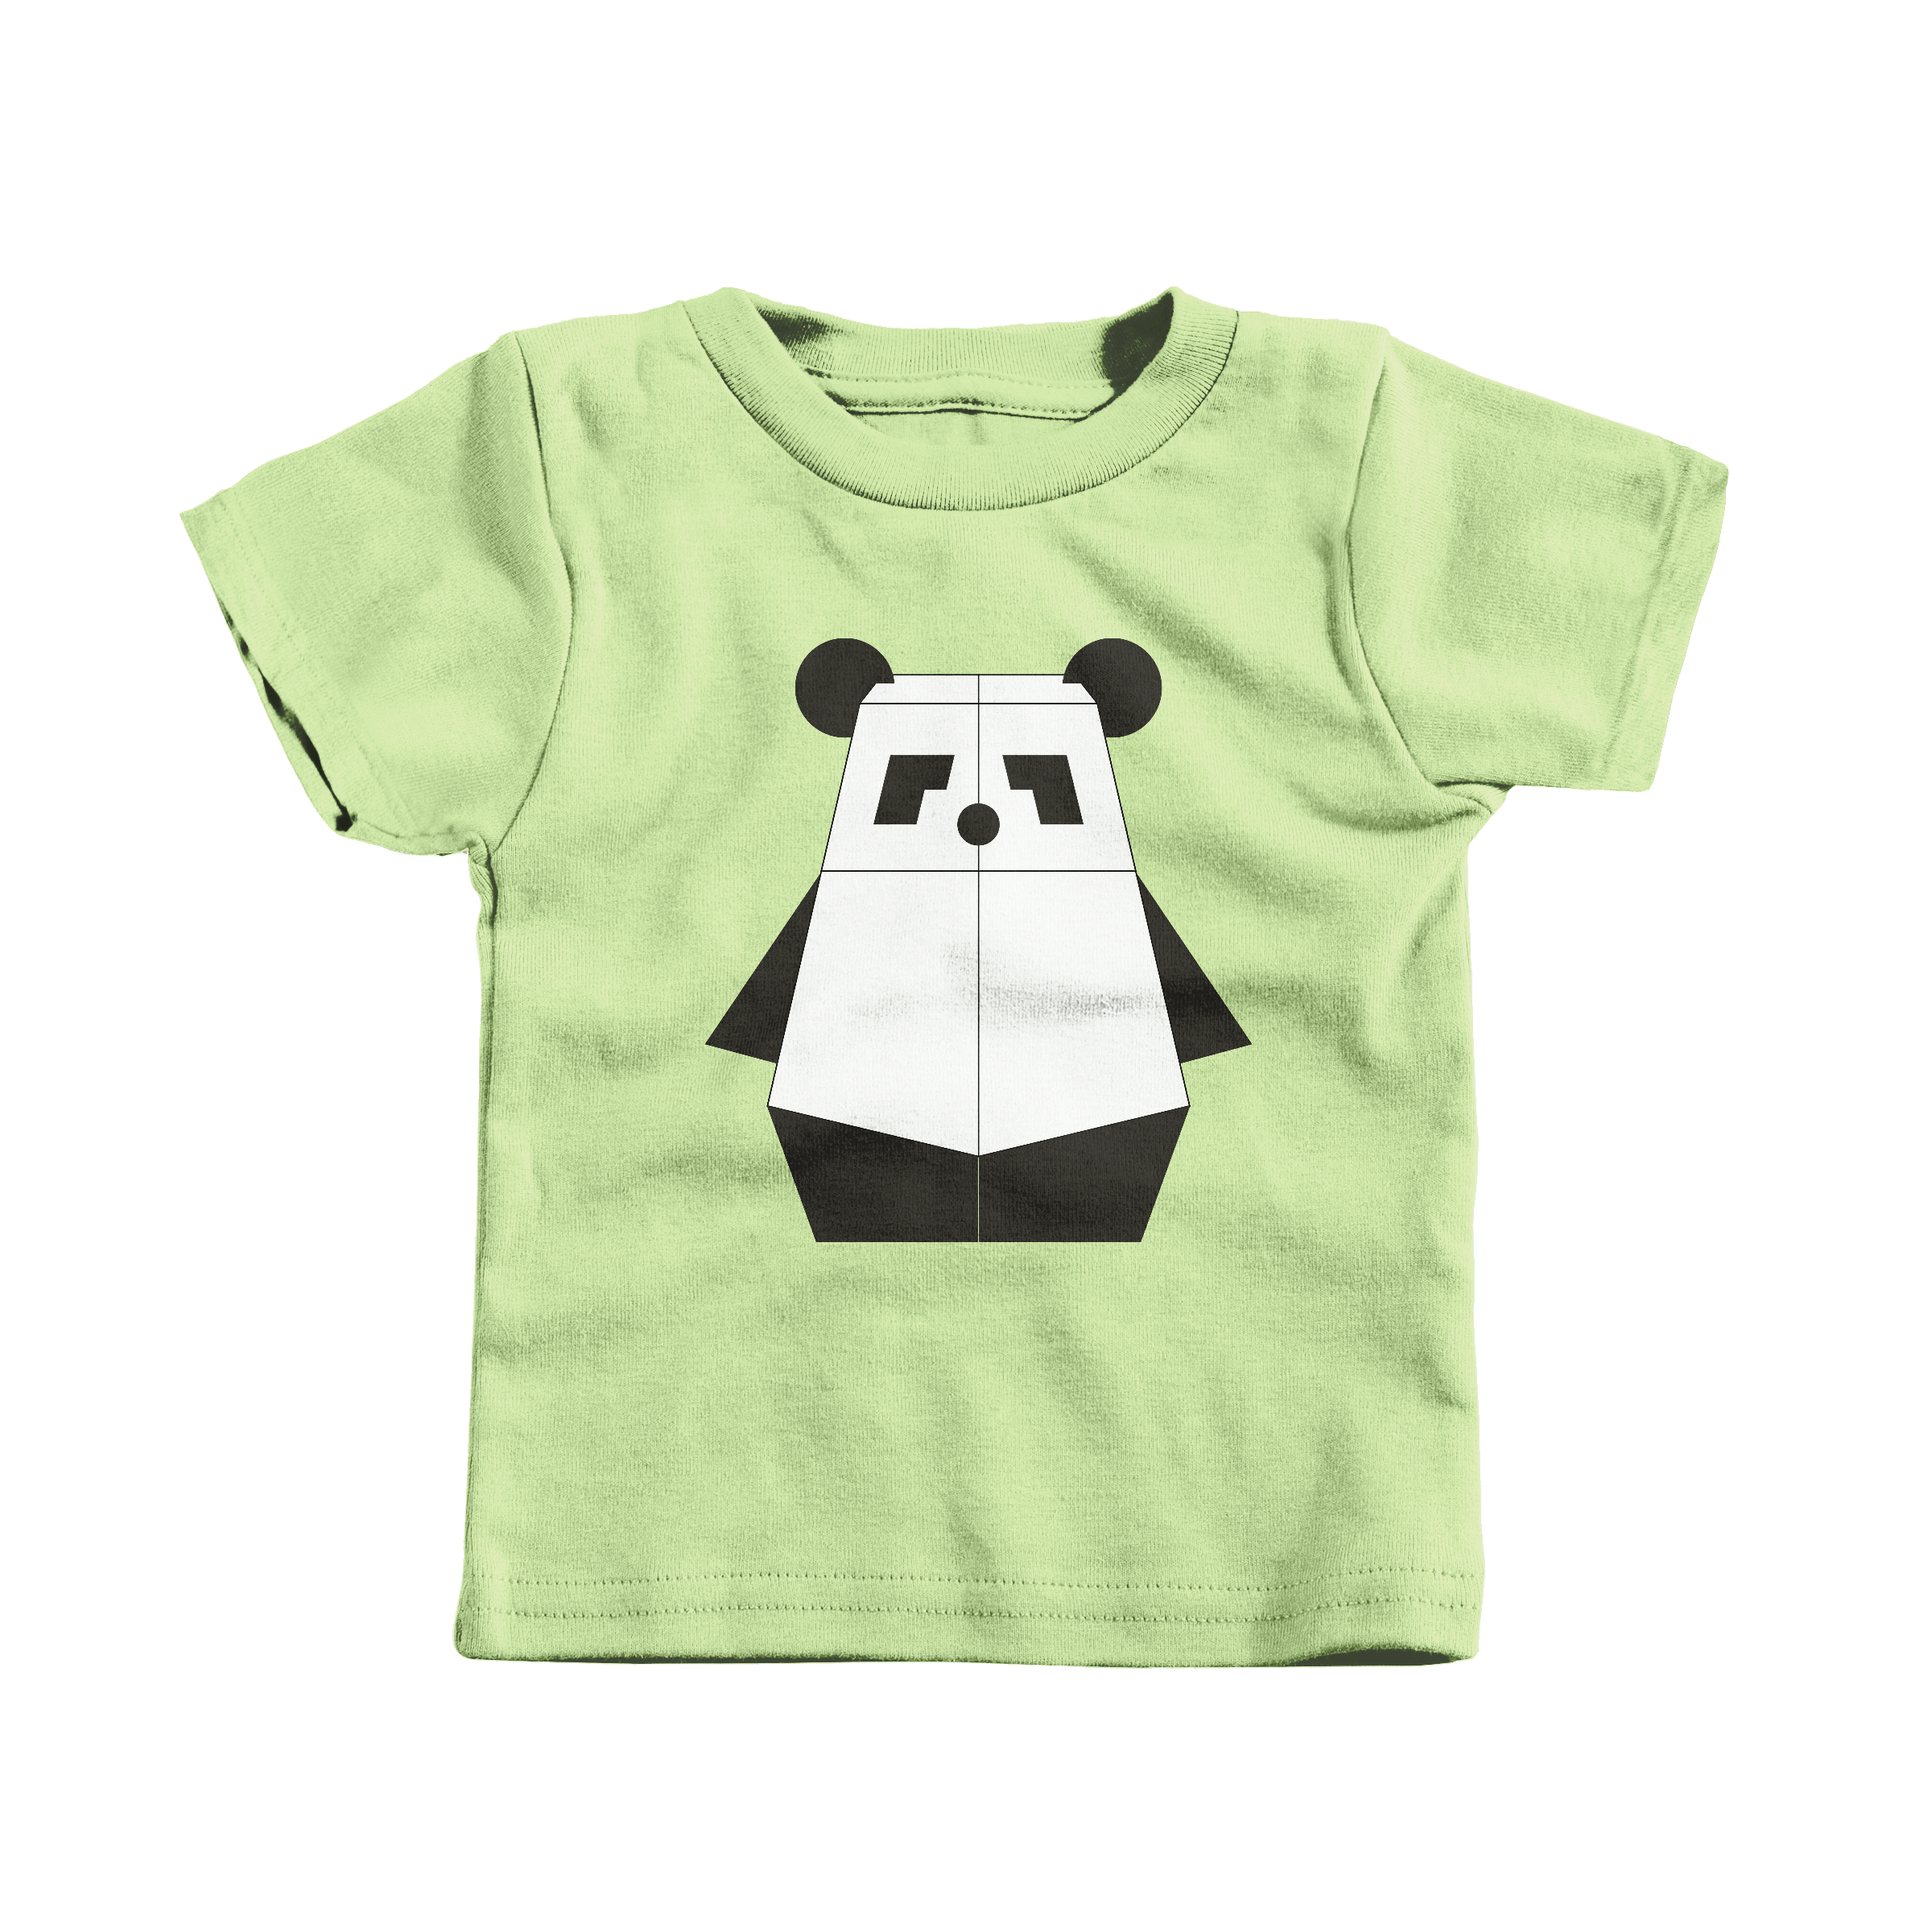 Pandabot Key Lime (T-Shirt)